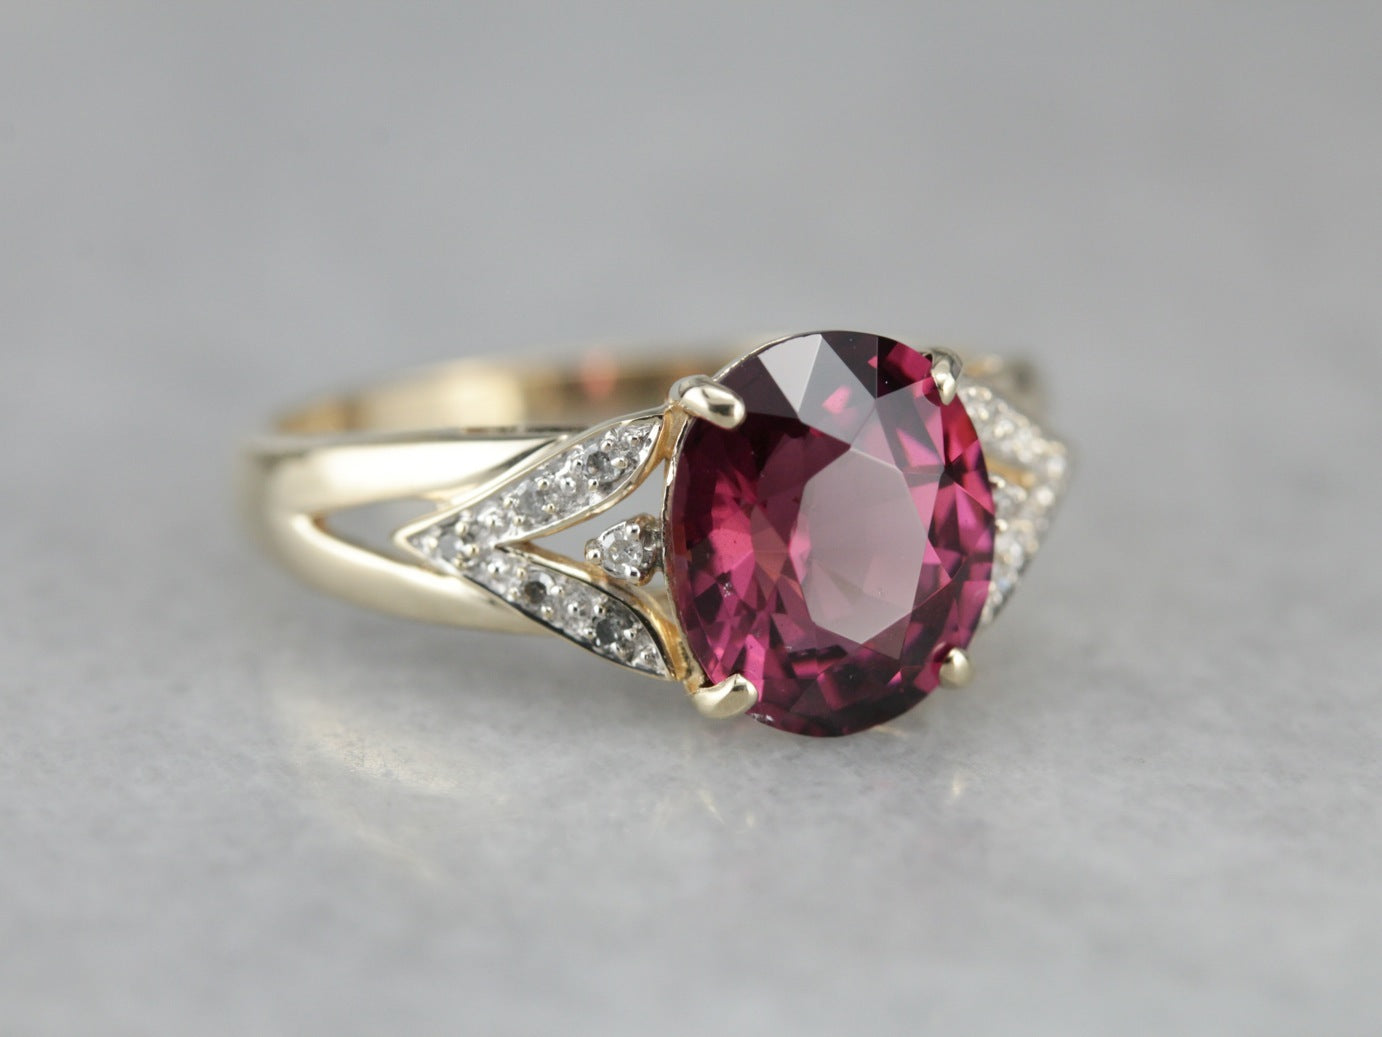 lohaspie rose from vintage rings wedding jewelry flower s ring item in women fine gemstone solid garnet gold rhodolite natural diamond for